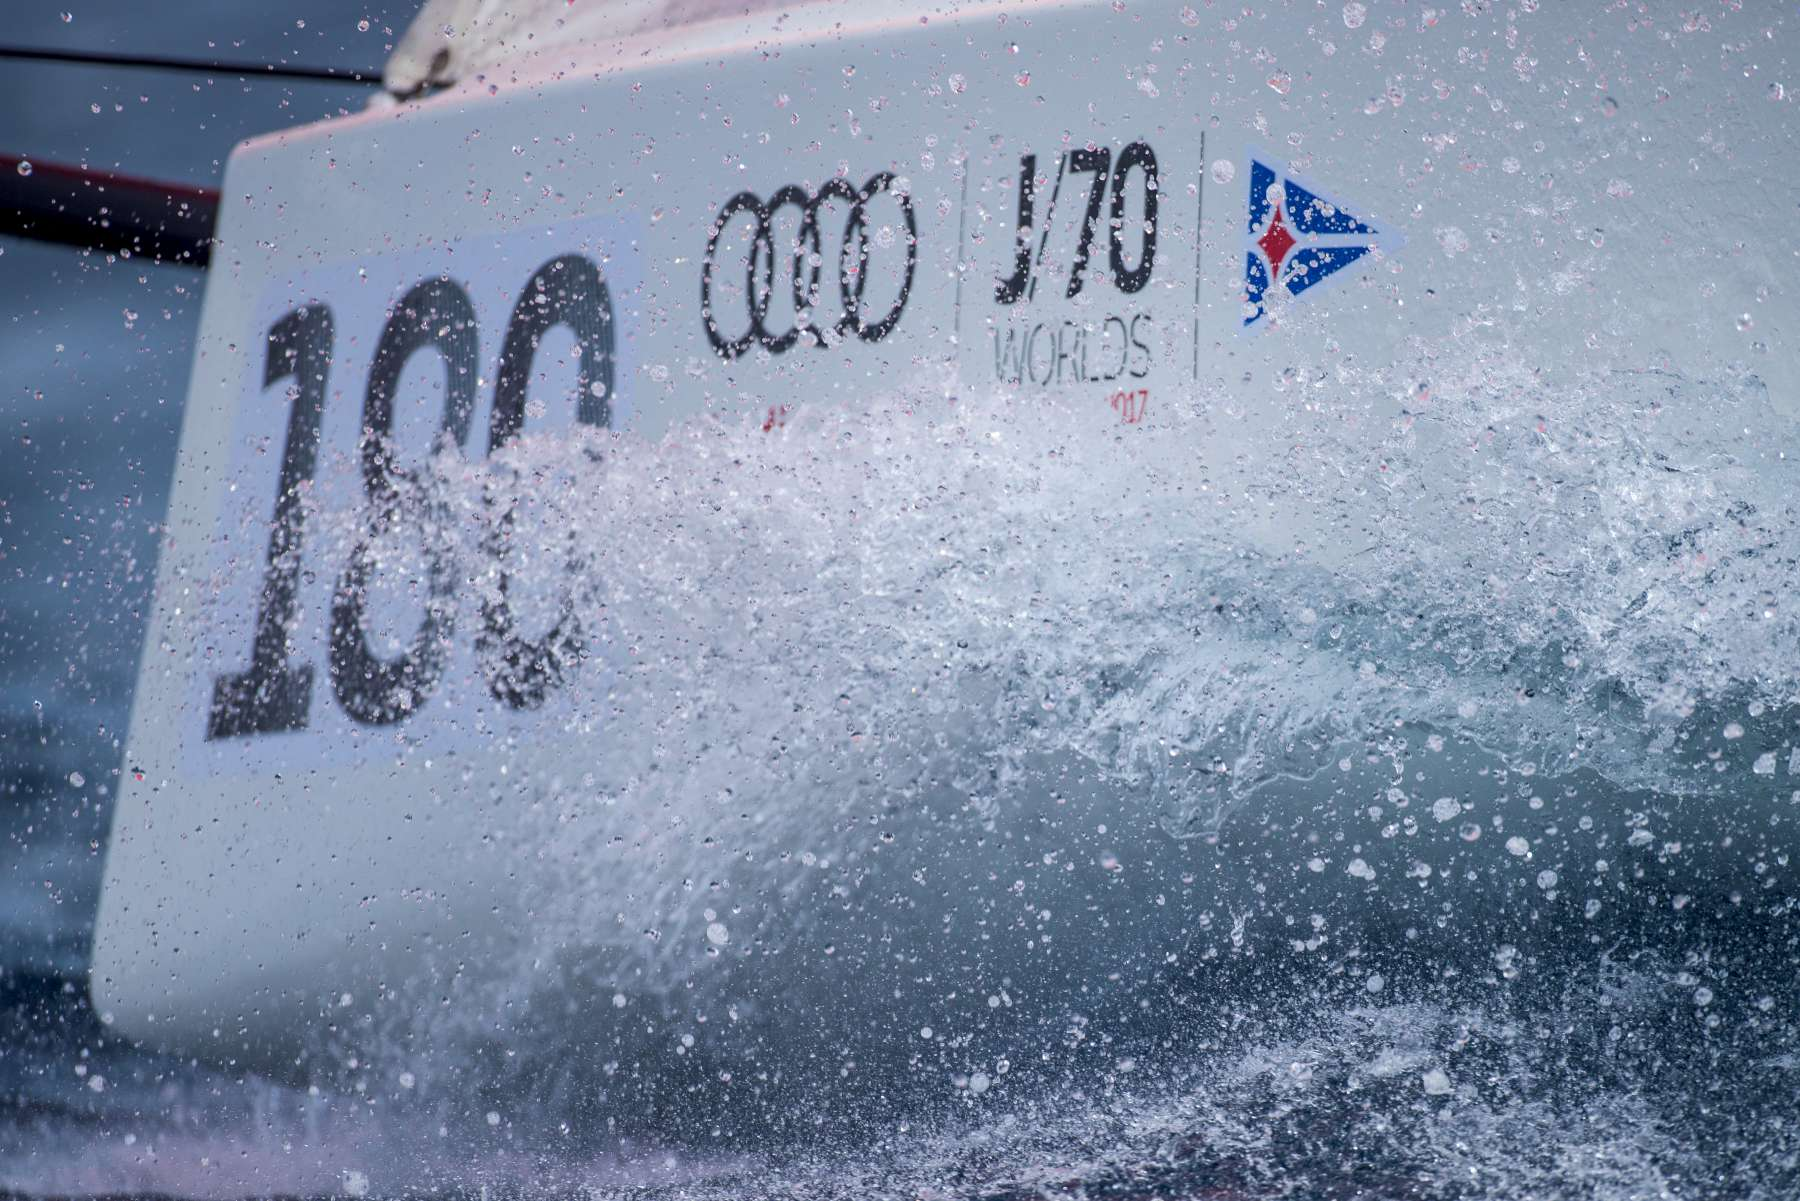 Audi J/70 World Championship - Video Day 1 online  - NEWS - Yacht Club Costa Smeralda